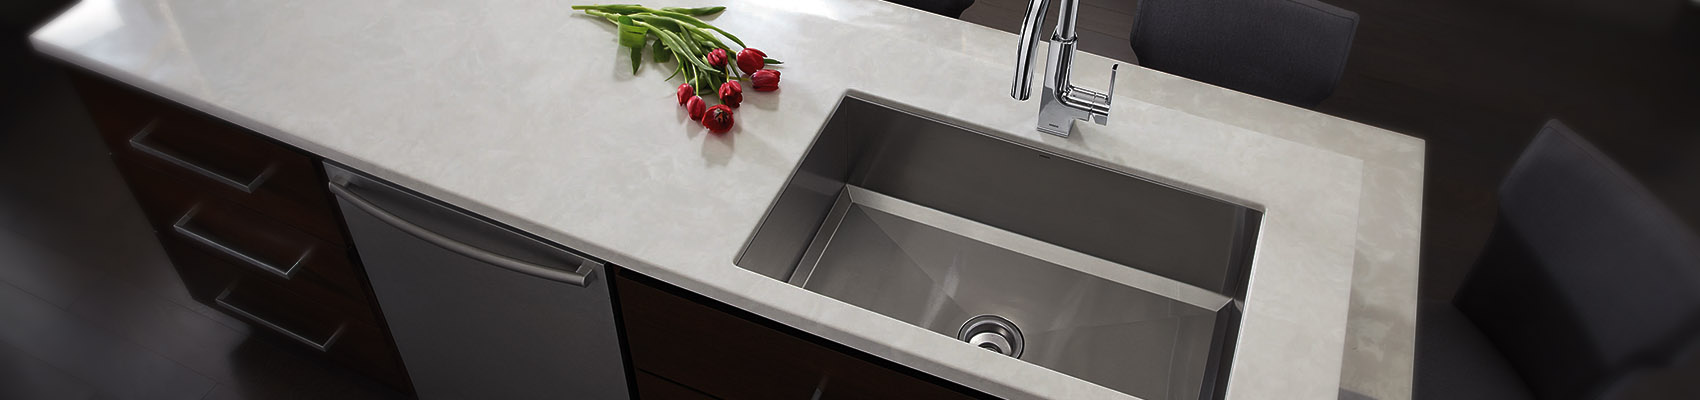 slideshow-surface-stone-solidtop-installation-counter-top-03_1400x700_2